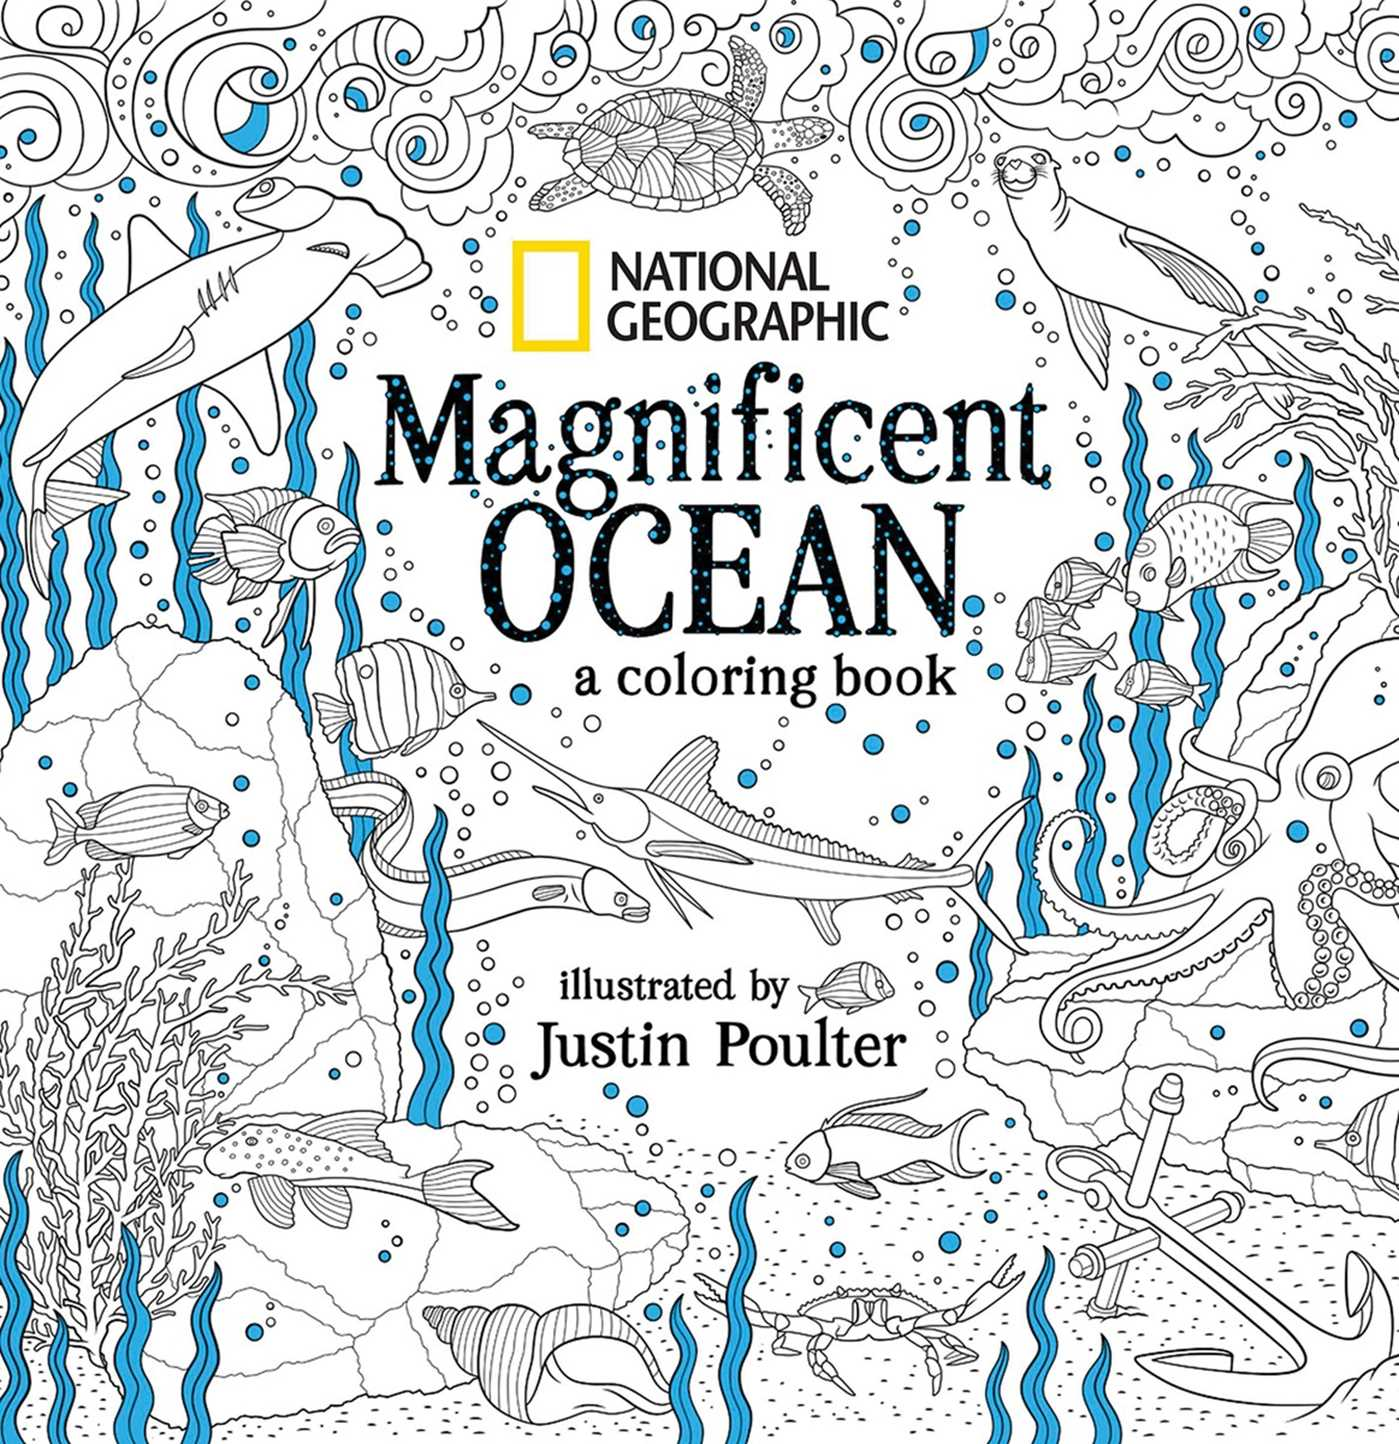 national geographic magnificent ocean a coloring book 9781426218163 hr - Ocean Coloring Book